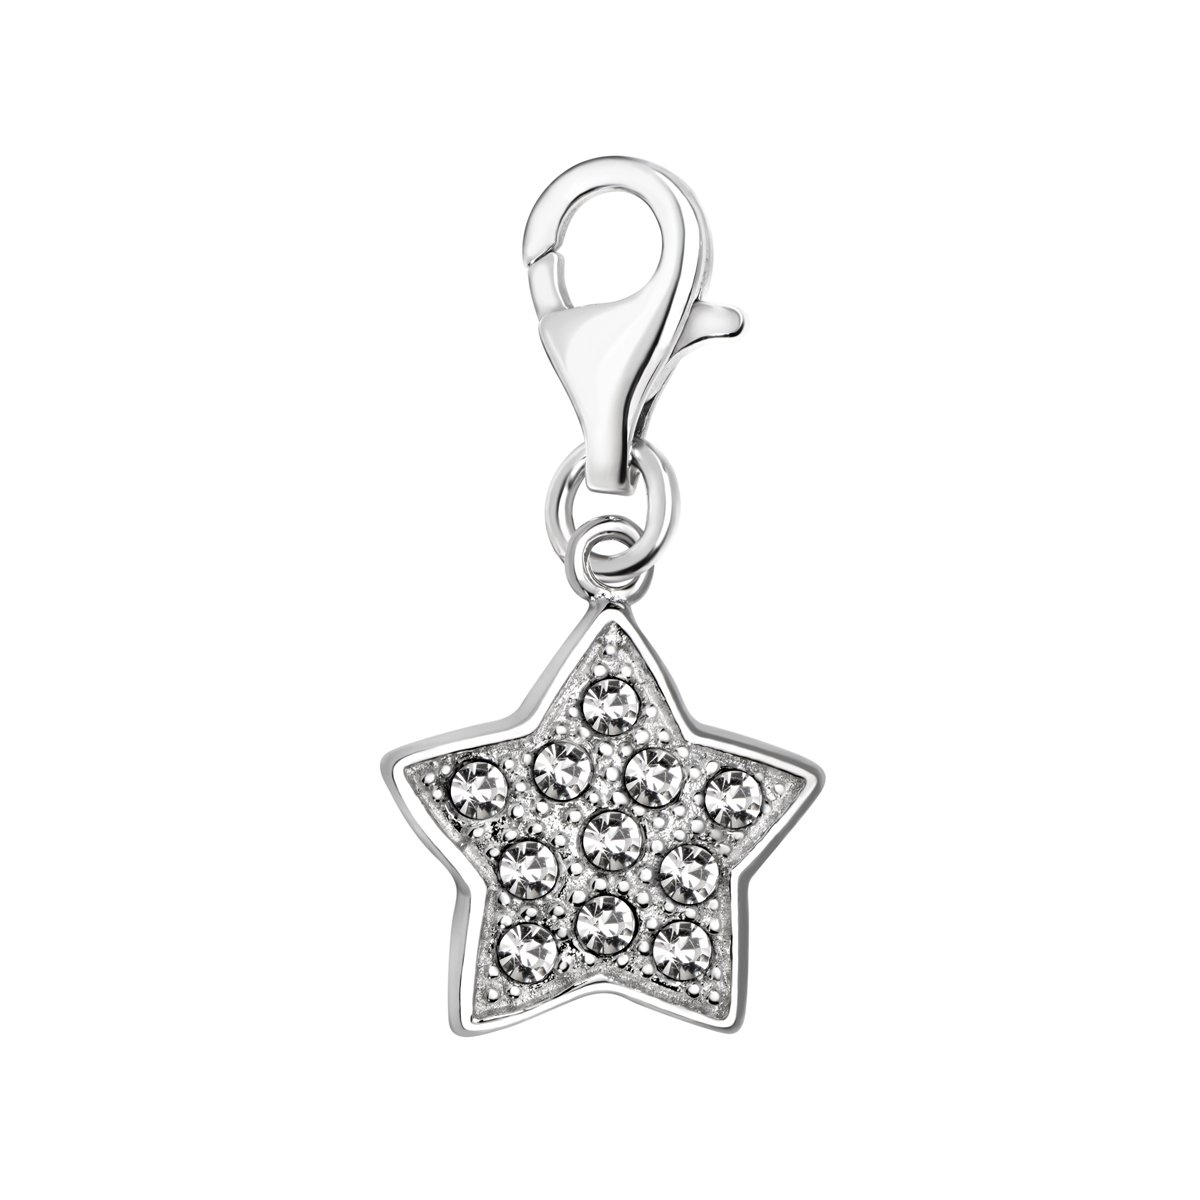 Quiges 925 Sterling Silver White Cubic Zirconia Star Clip On Charm Pendant